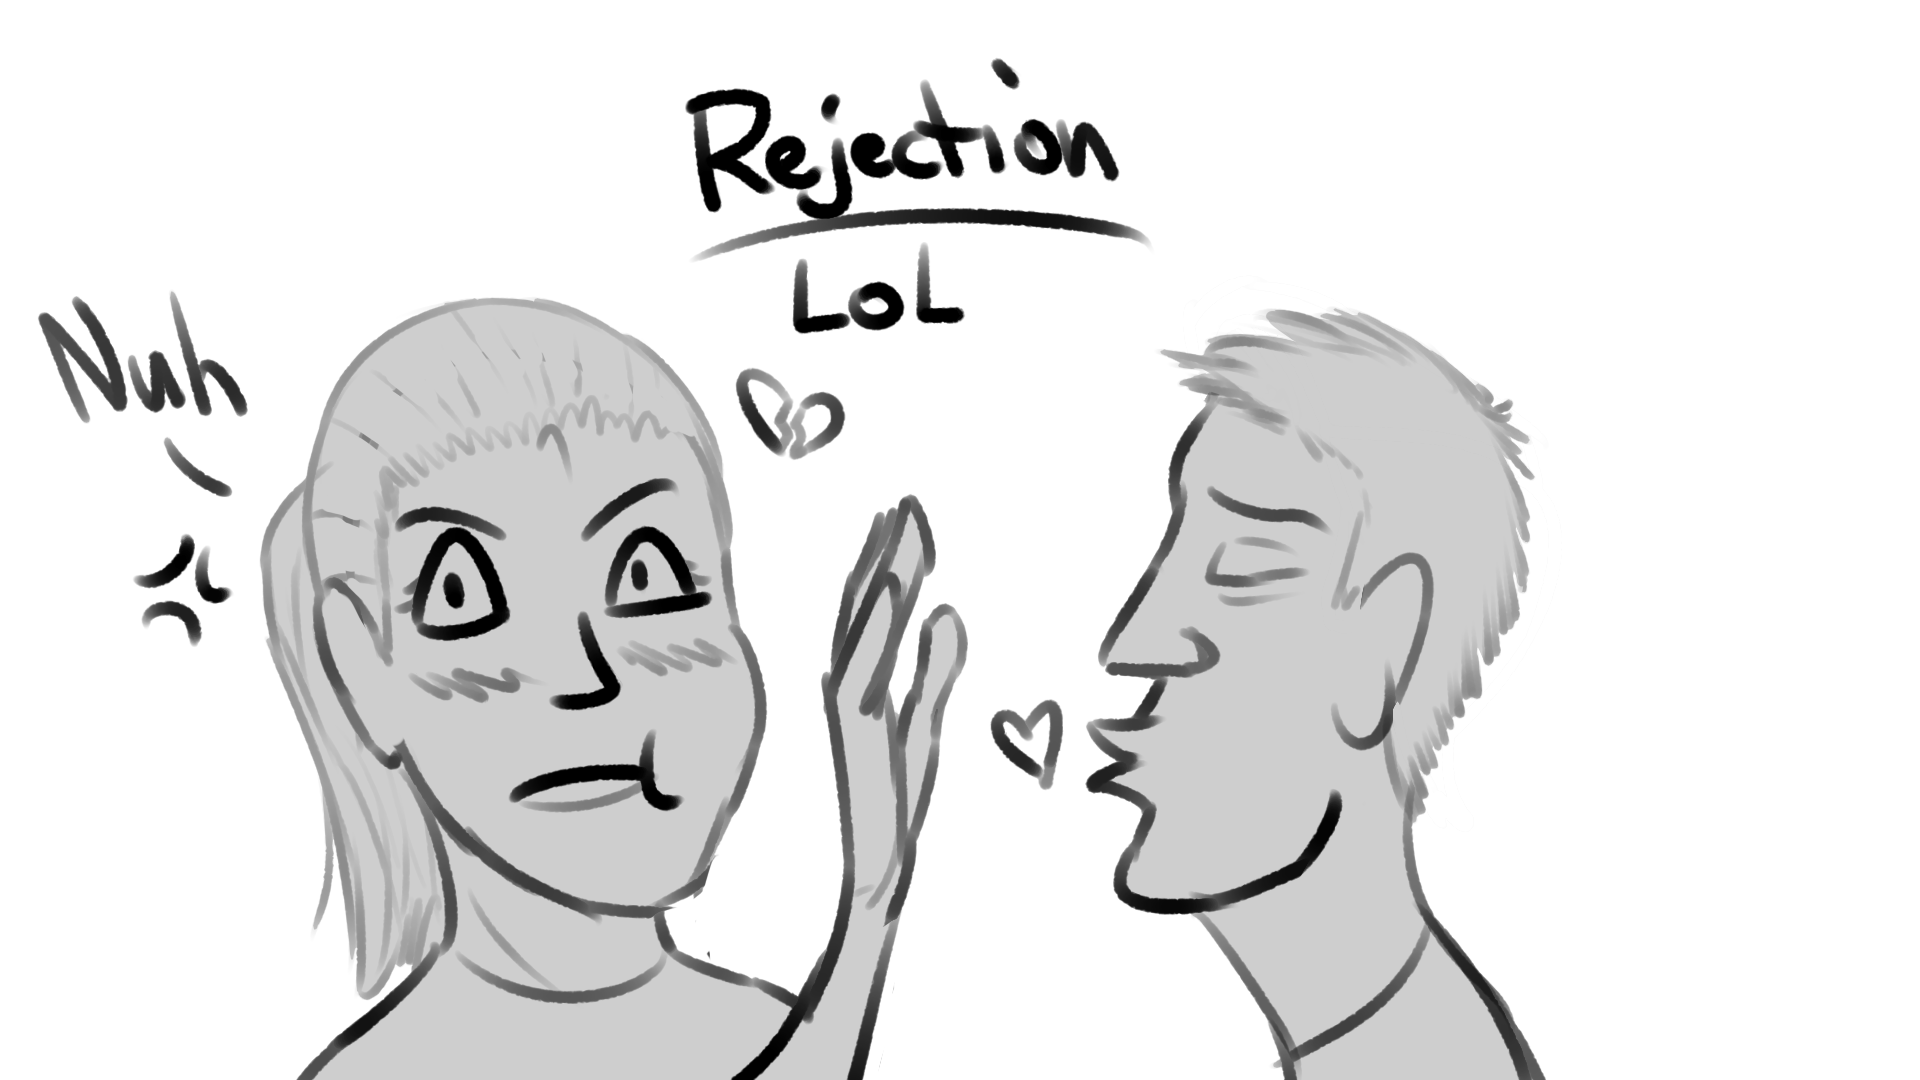 Rejection LOL